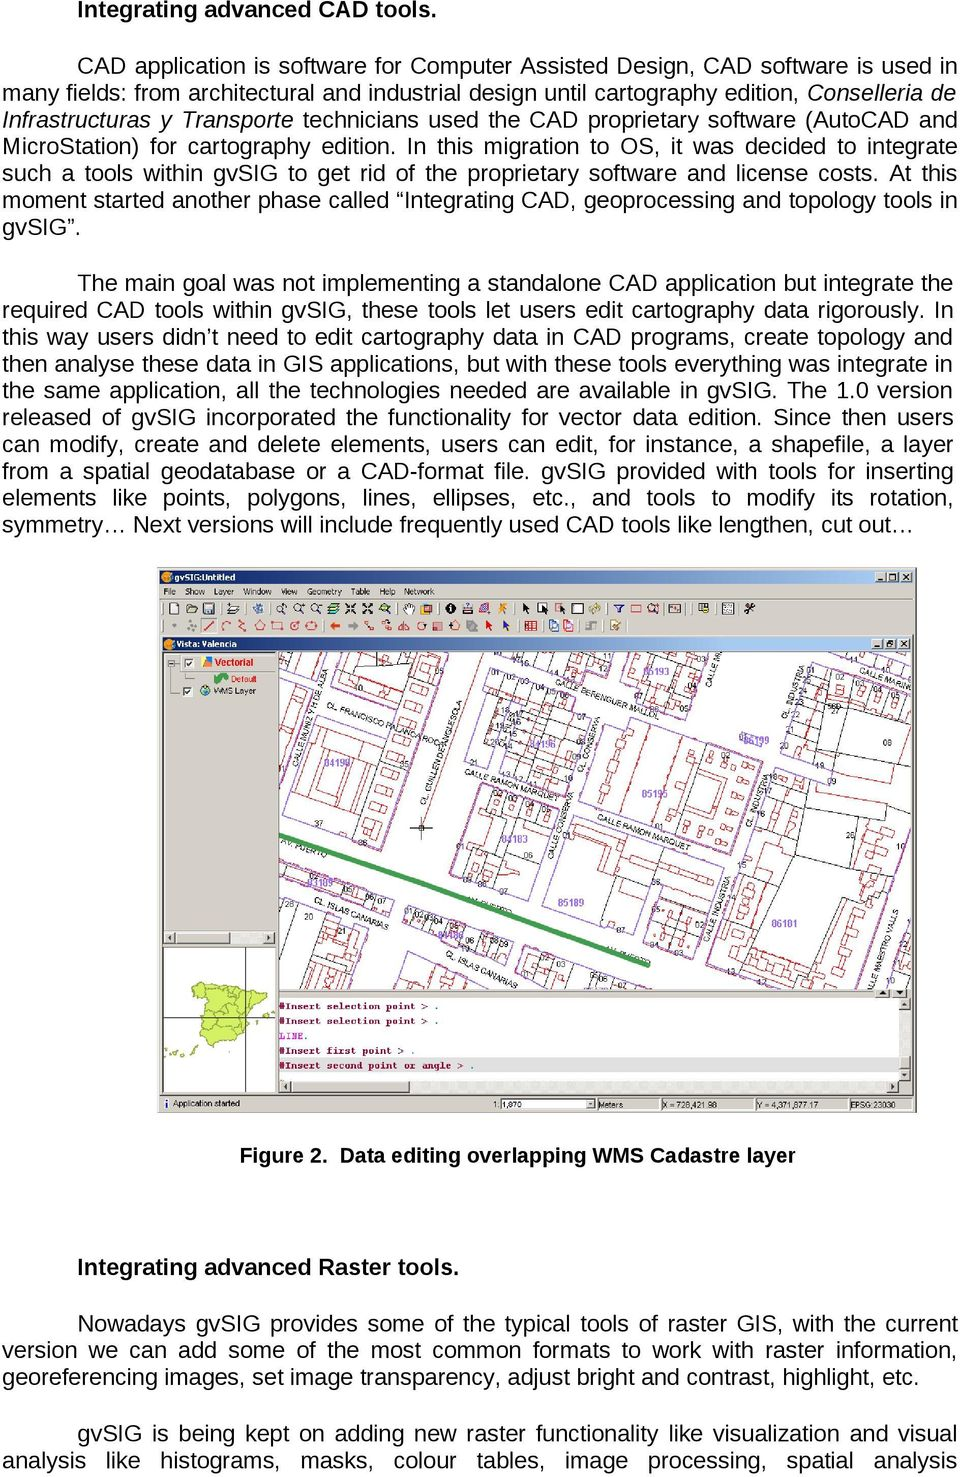 Transporte technicians used the CAD proprietary software (AutoCAD and MicroStation) for cartography edition.